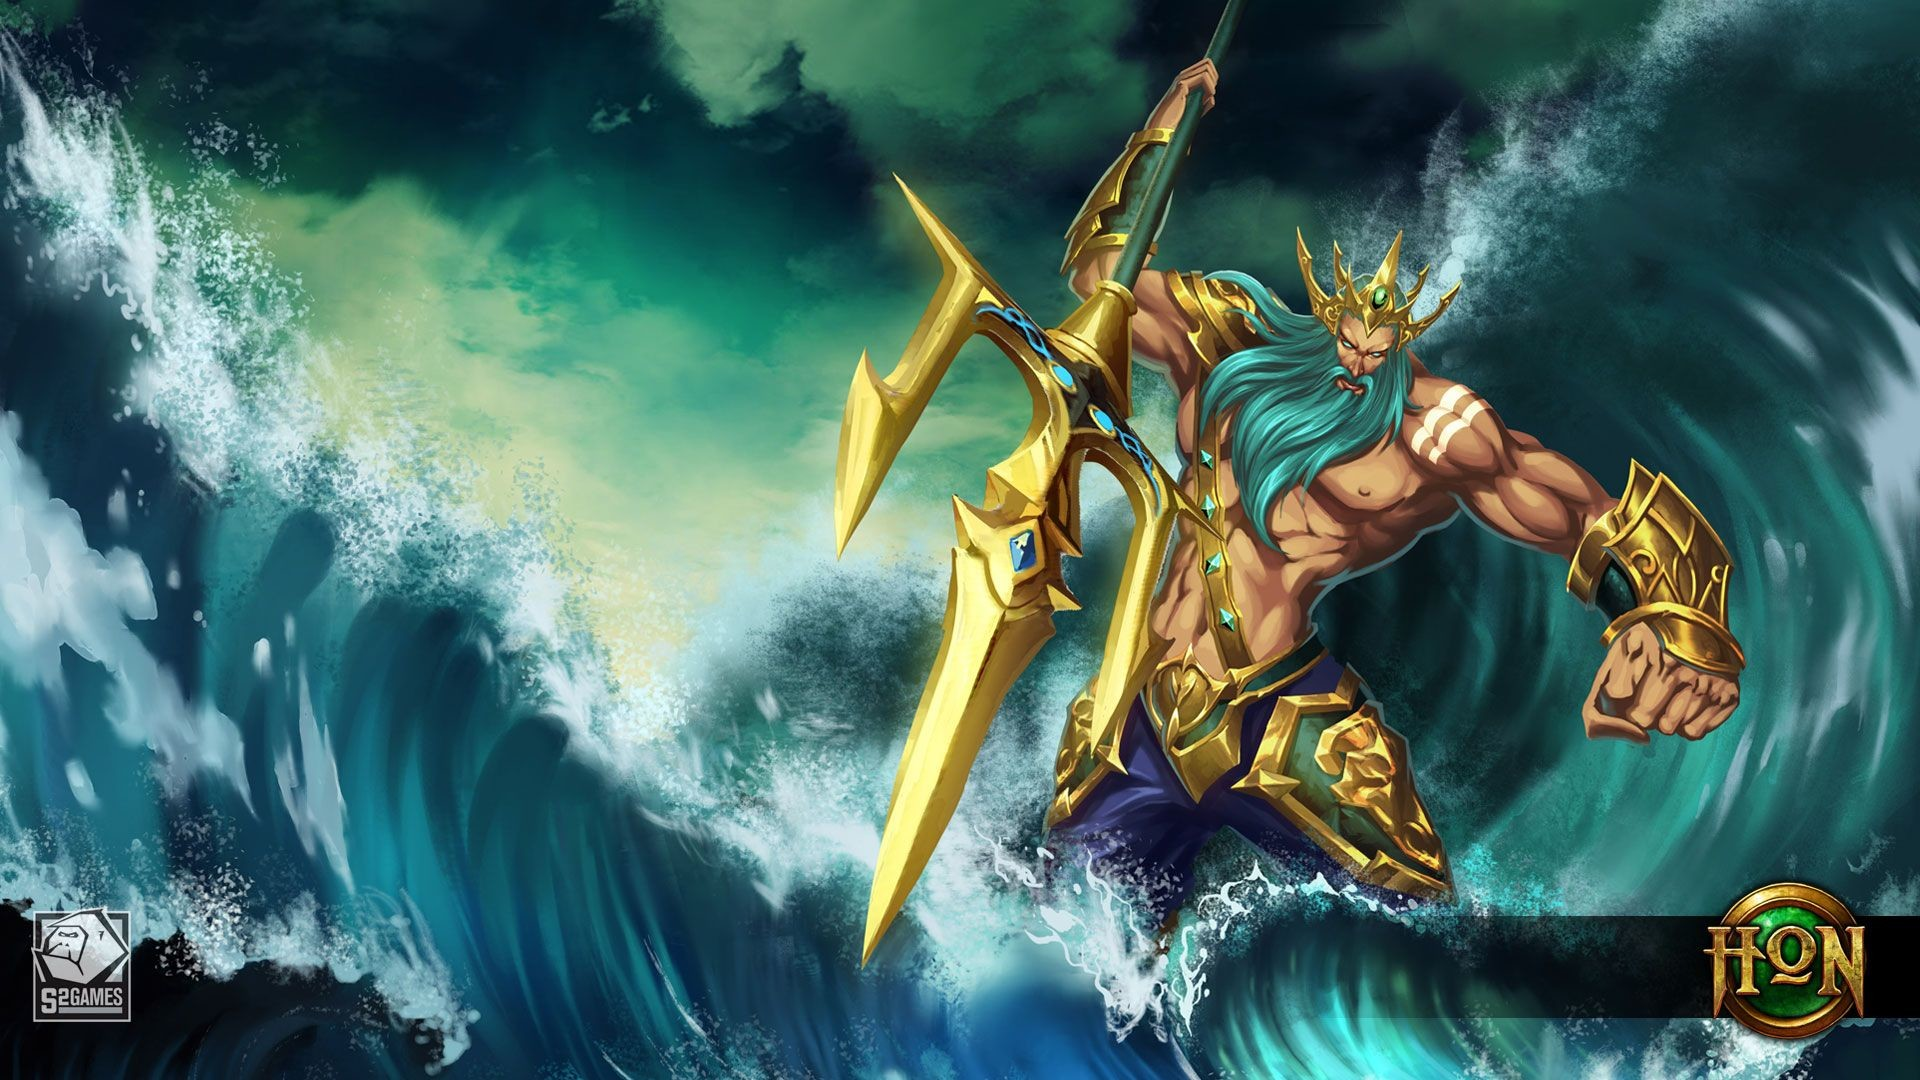 Res: 1920x1080, Poseidon Tempest Wallpaper | Heroes of Newerth Lore